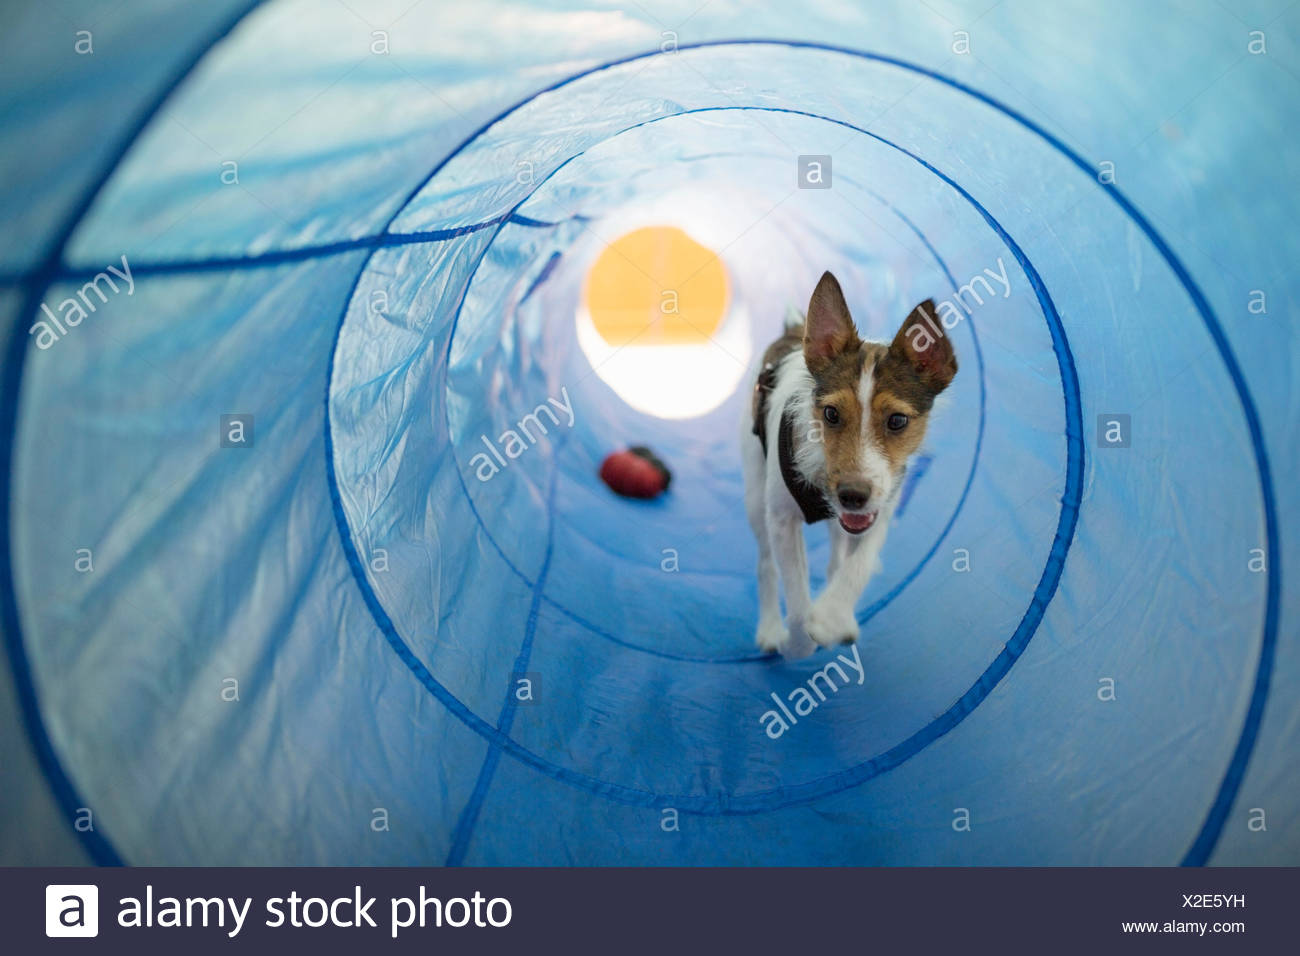 Hund spielen in Agility-tunnel Stockbild